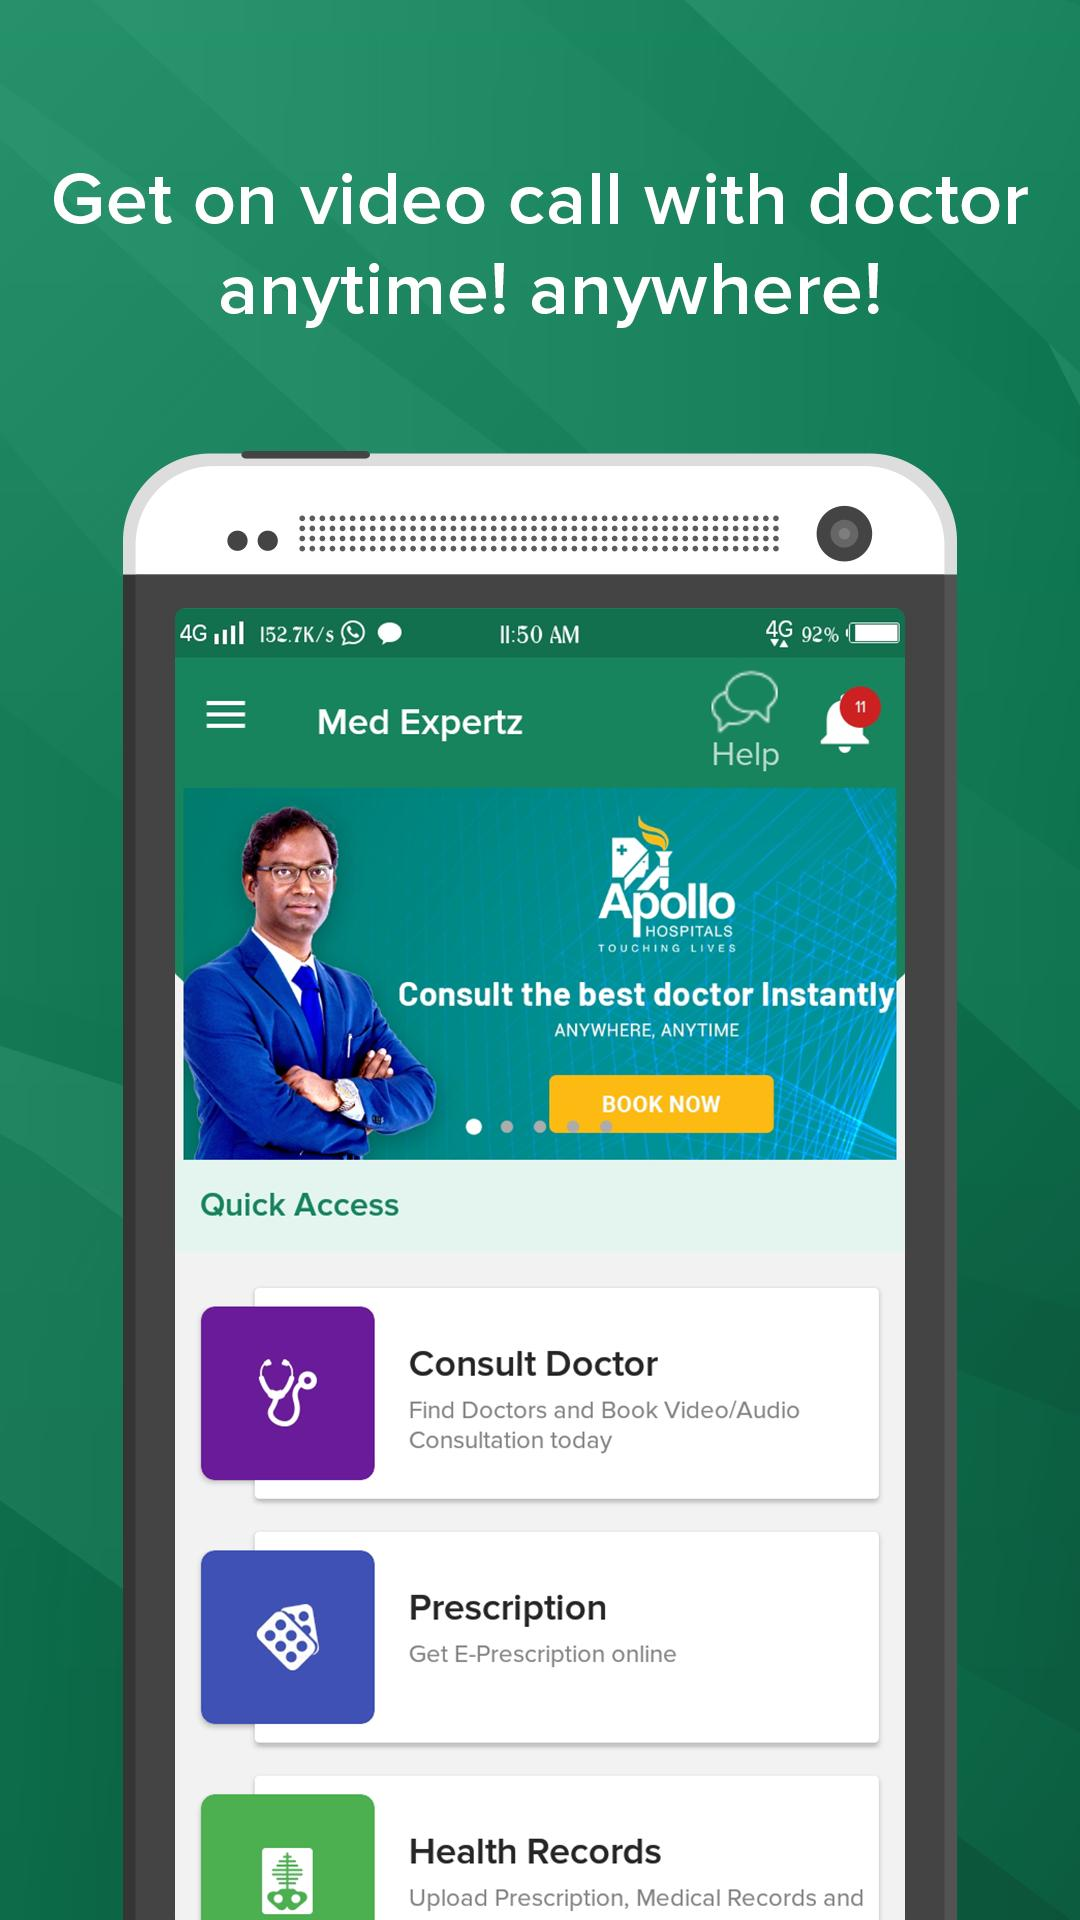 Medexpertz - Consult Doctor Online 24x7 on Video for Android